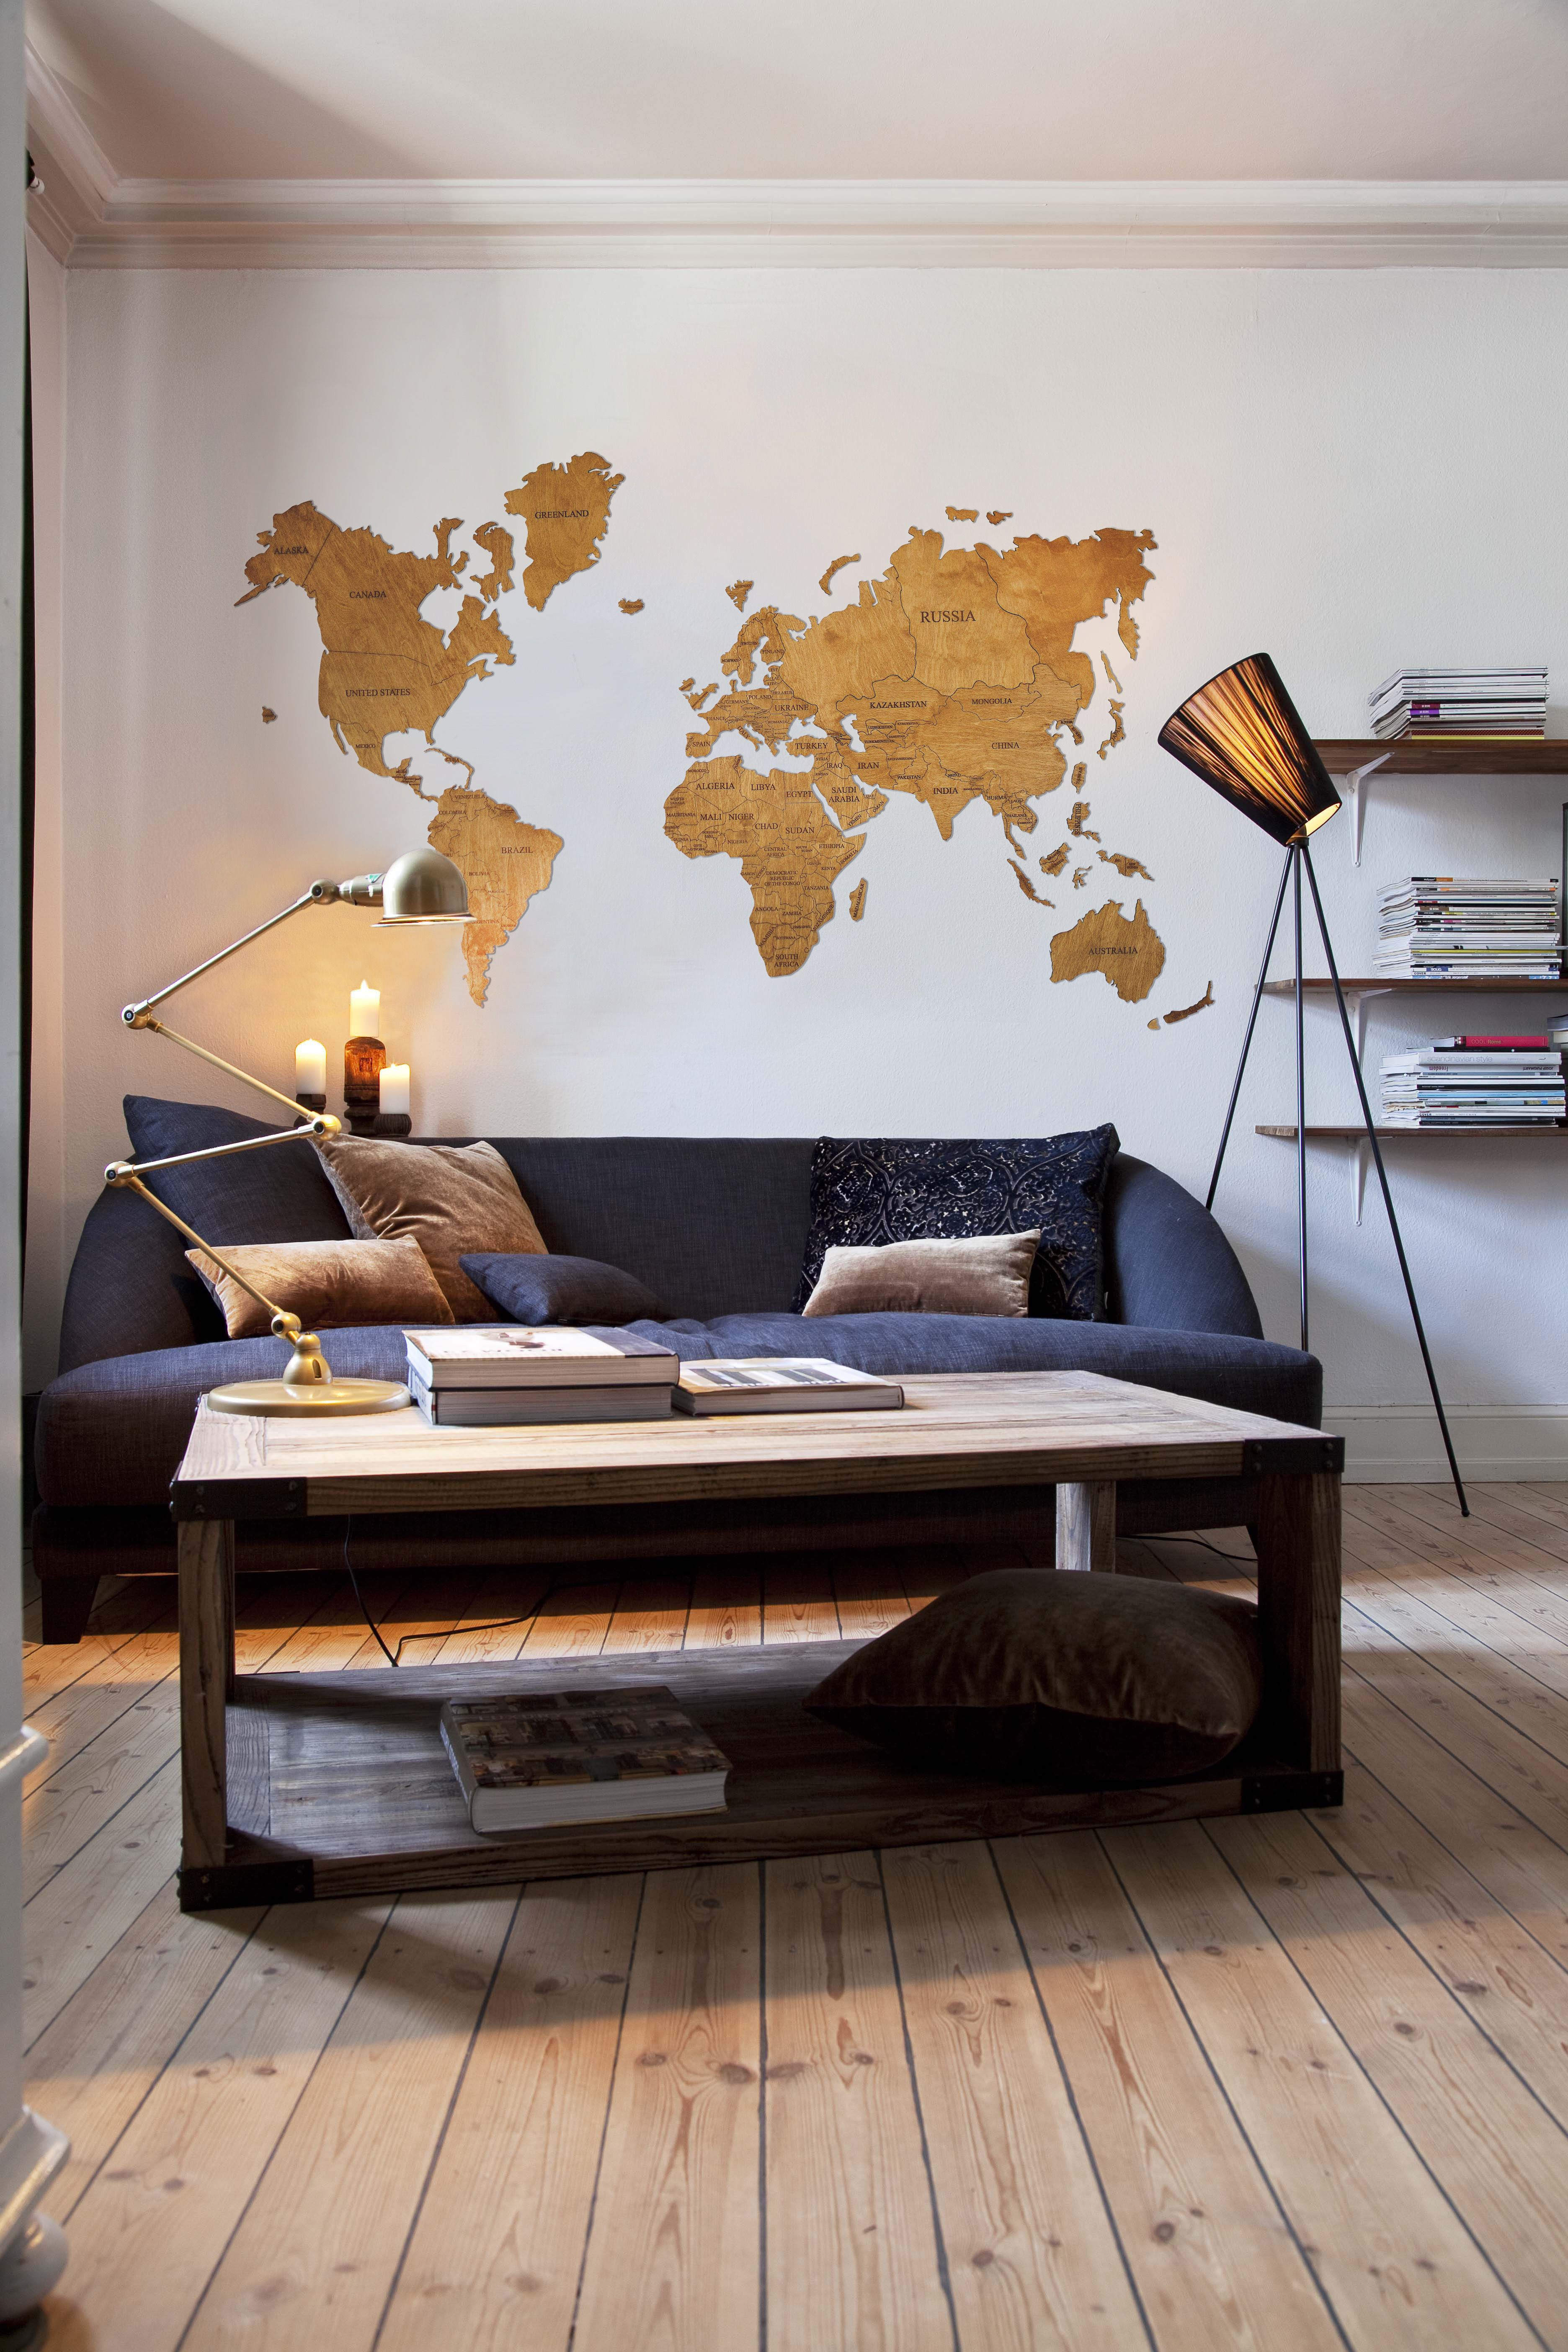 Rustic Wall Map World Travel Map World Map Wall Art World Map Etsy In 2020 Living Room Decor Rustic World Map Decor Map Wall Decor